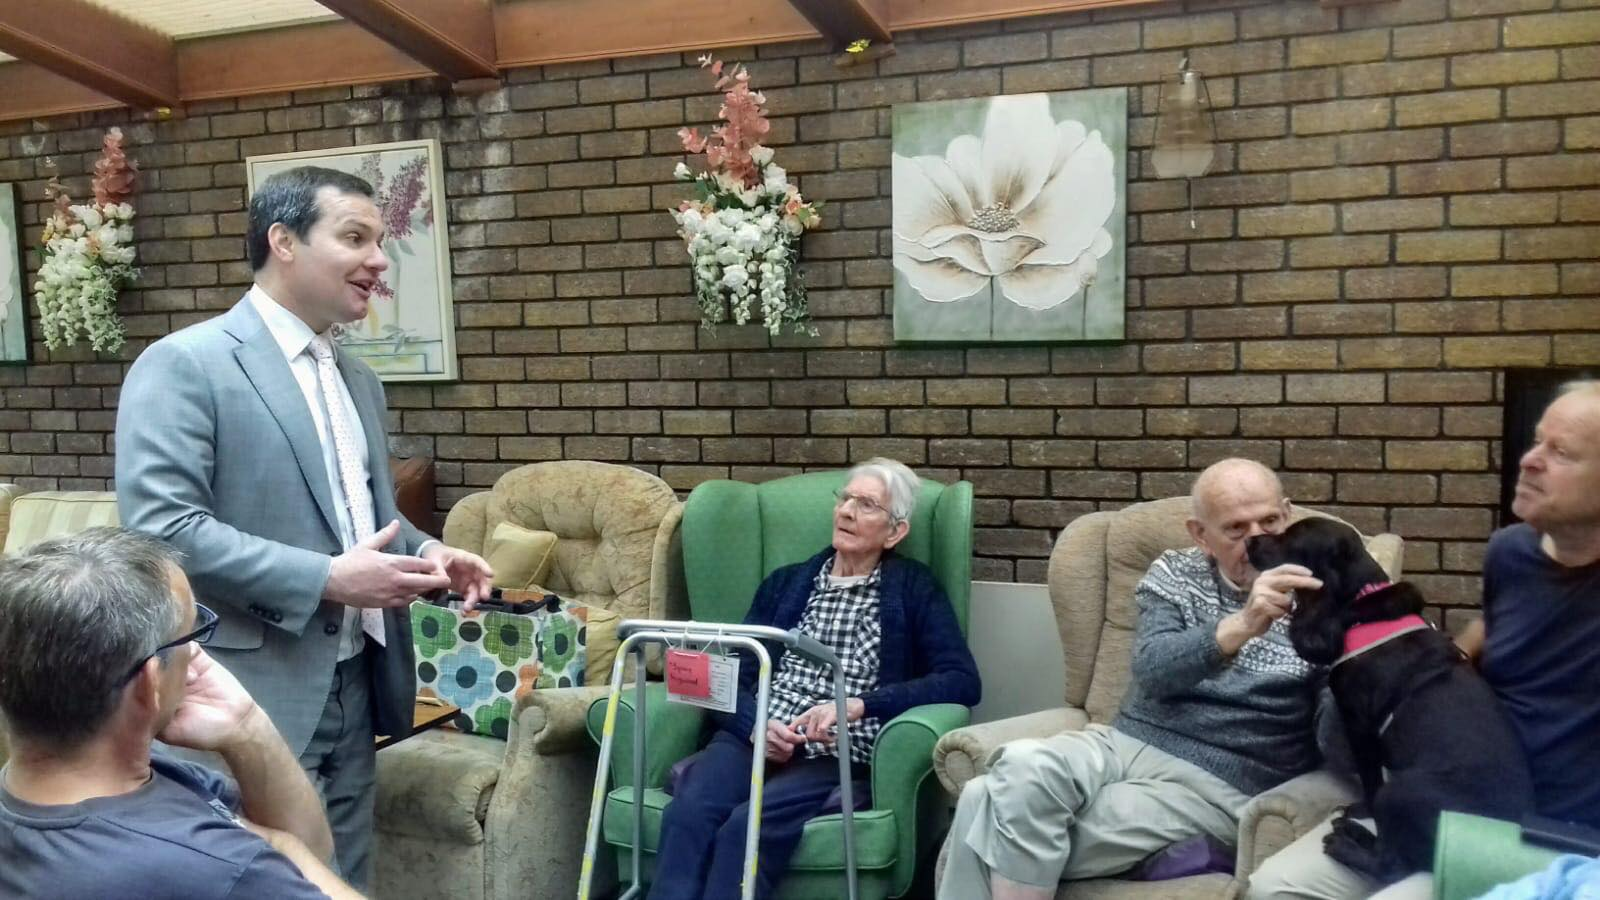 MP visits local Dementia Care Home